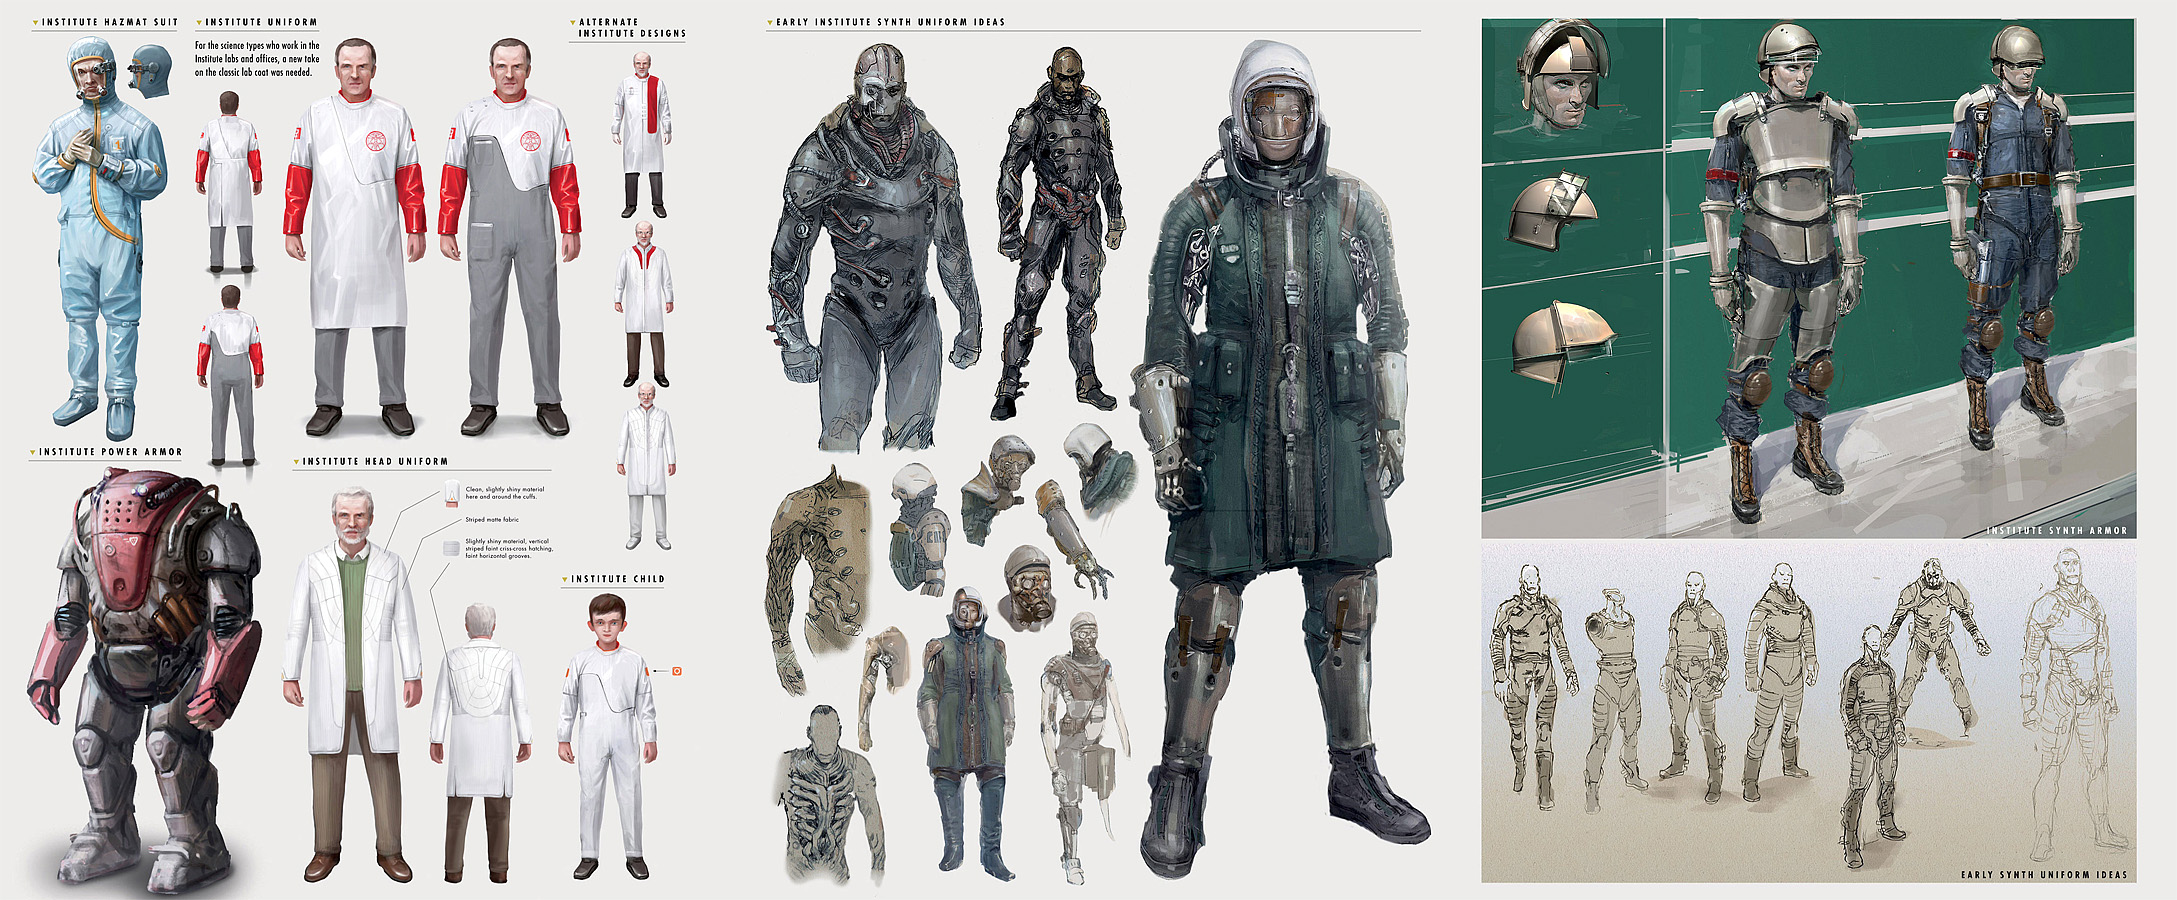 Institute outfit concept art